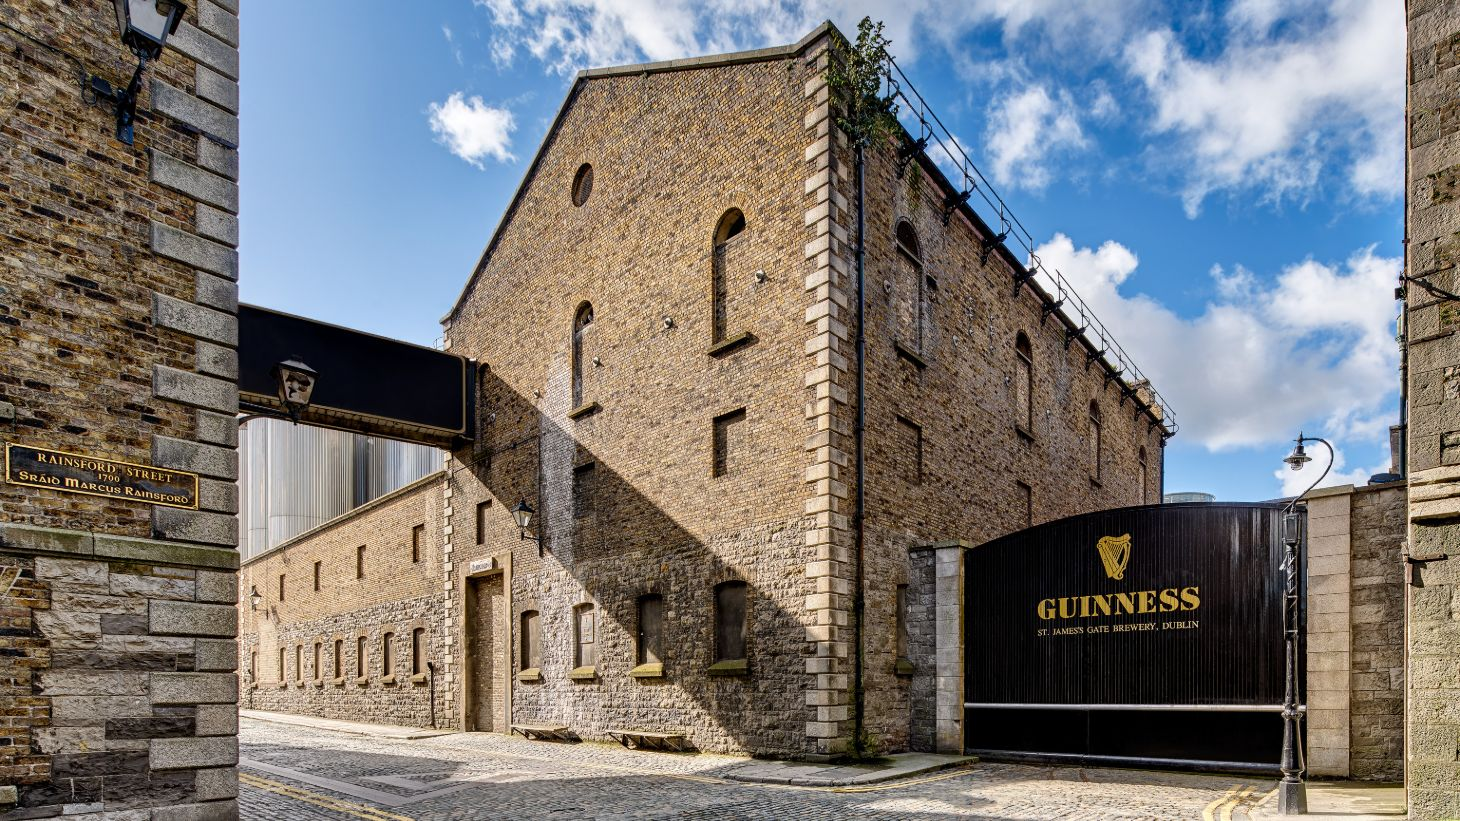 Treat yourself to a tour of the Guinness Storehouse and see the wonderful buildings.